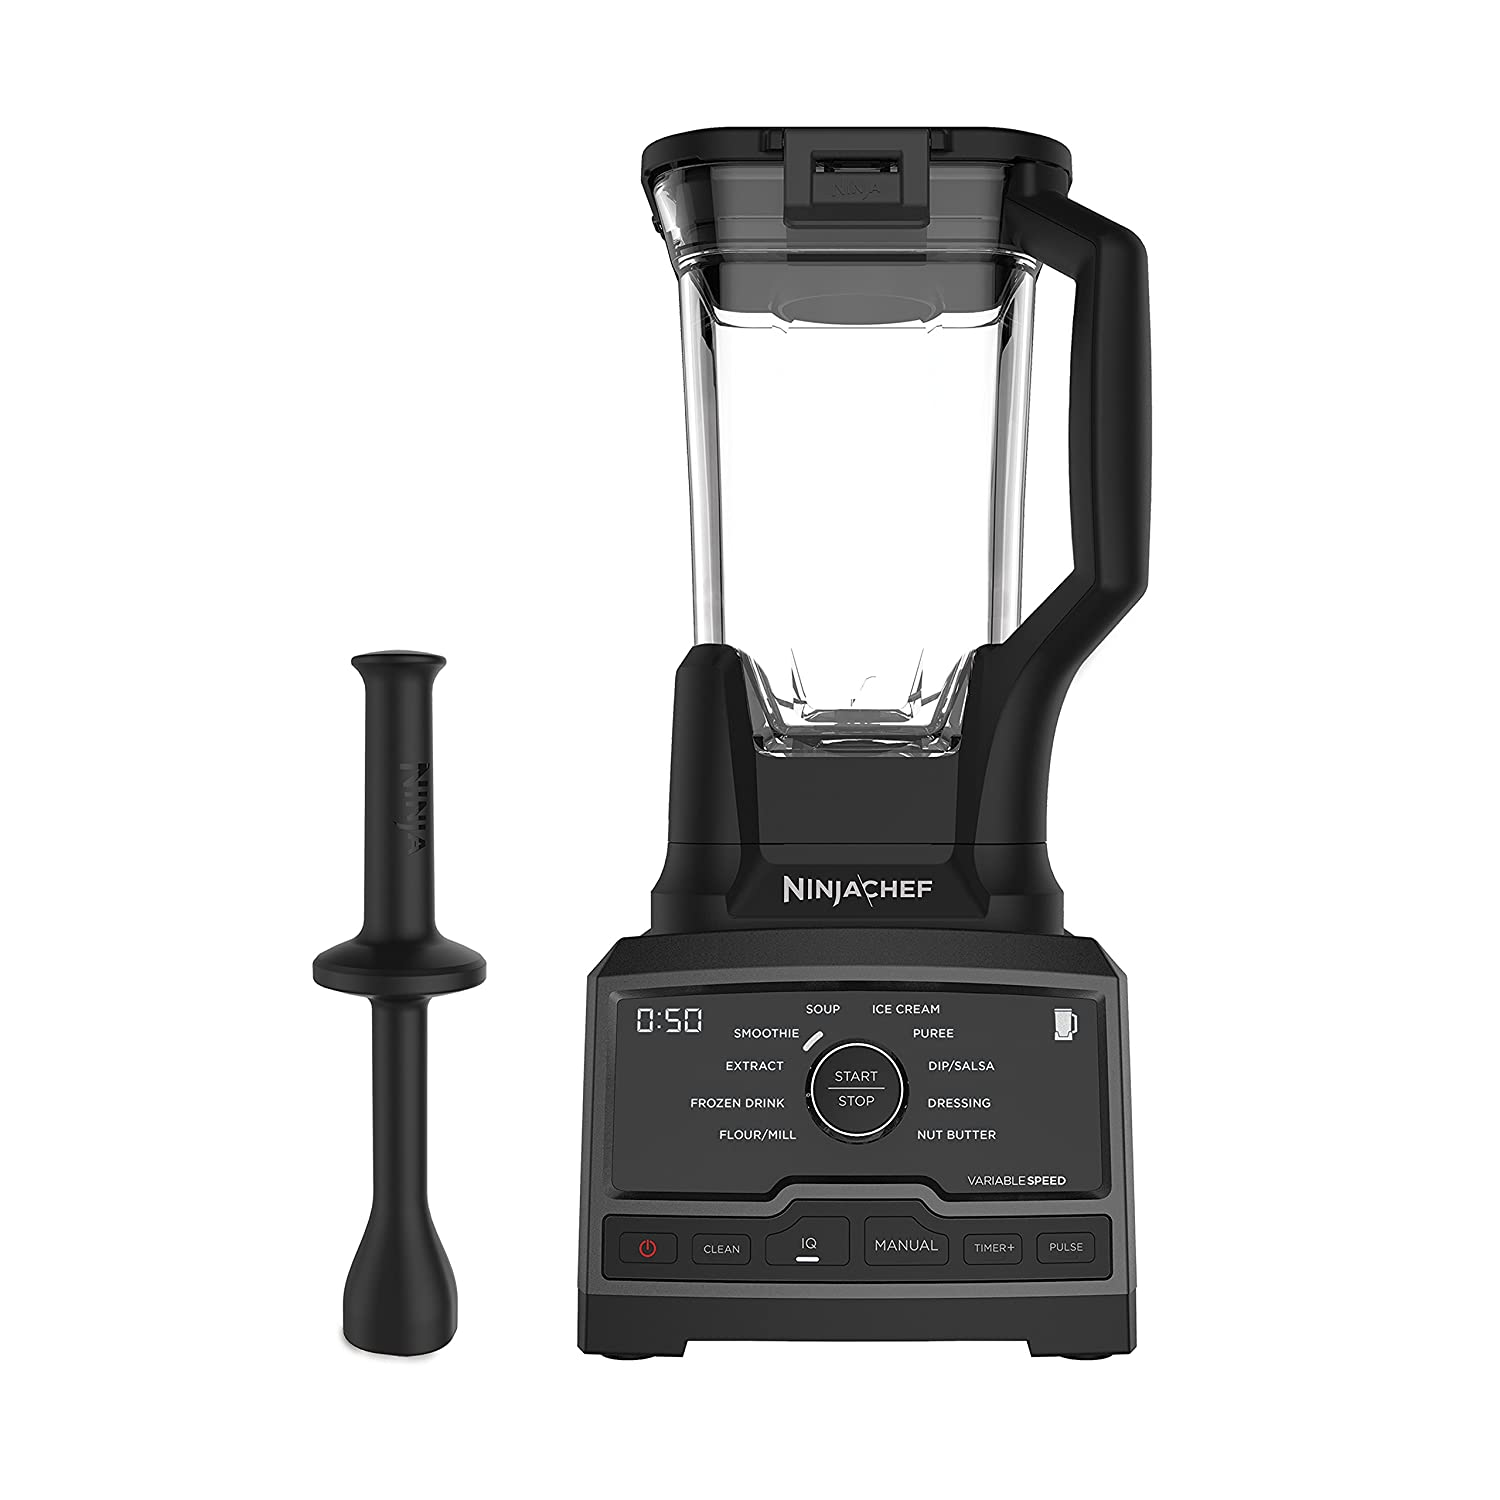 One Size Ninja Chef Countertop Blender with 1500-Watt Auto-iQ Base, 10 Pre-Sets, 10 Speeds, Dishwasher Safe 72-Ounce Pitcher, and 50 Recipe Booklet (CT805)